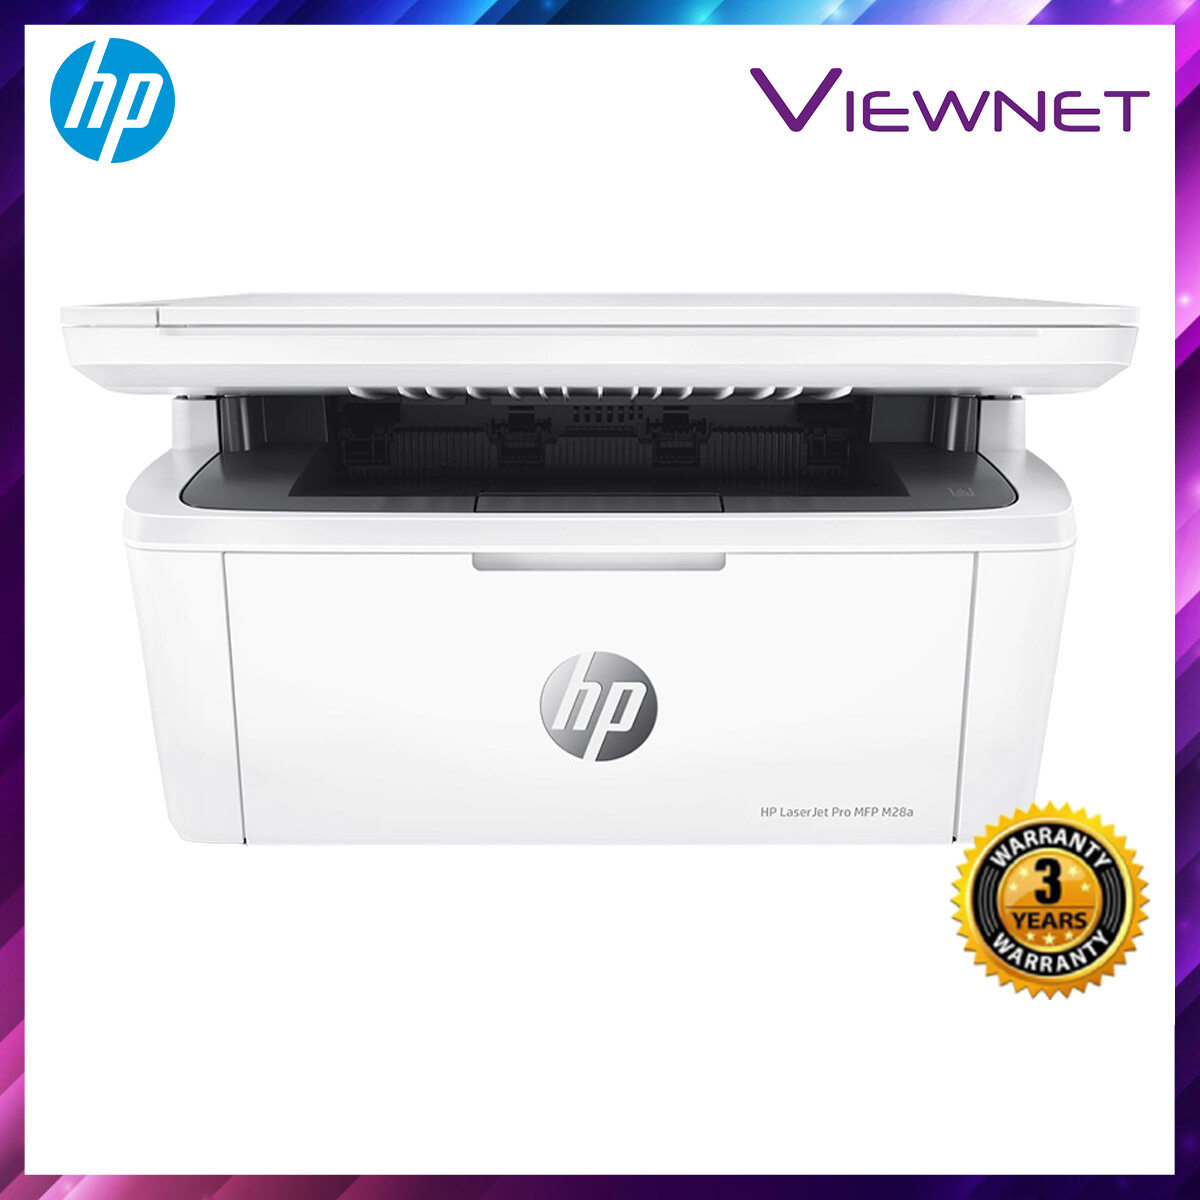 HP LaserJet Pro MFP M28a Printer PRINT SCAN COPY 3 Years Onsite Warranty with 1-to-1 Unit exchange **NEED TO ONLINE REGISTER**